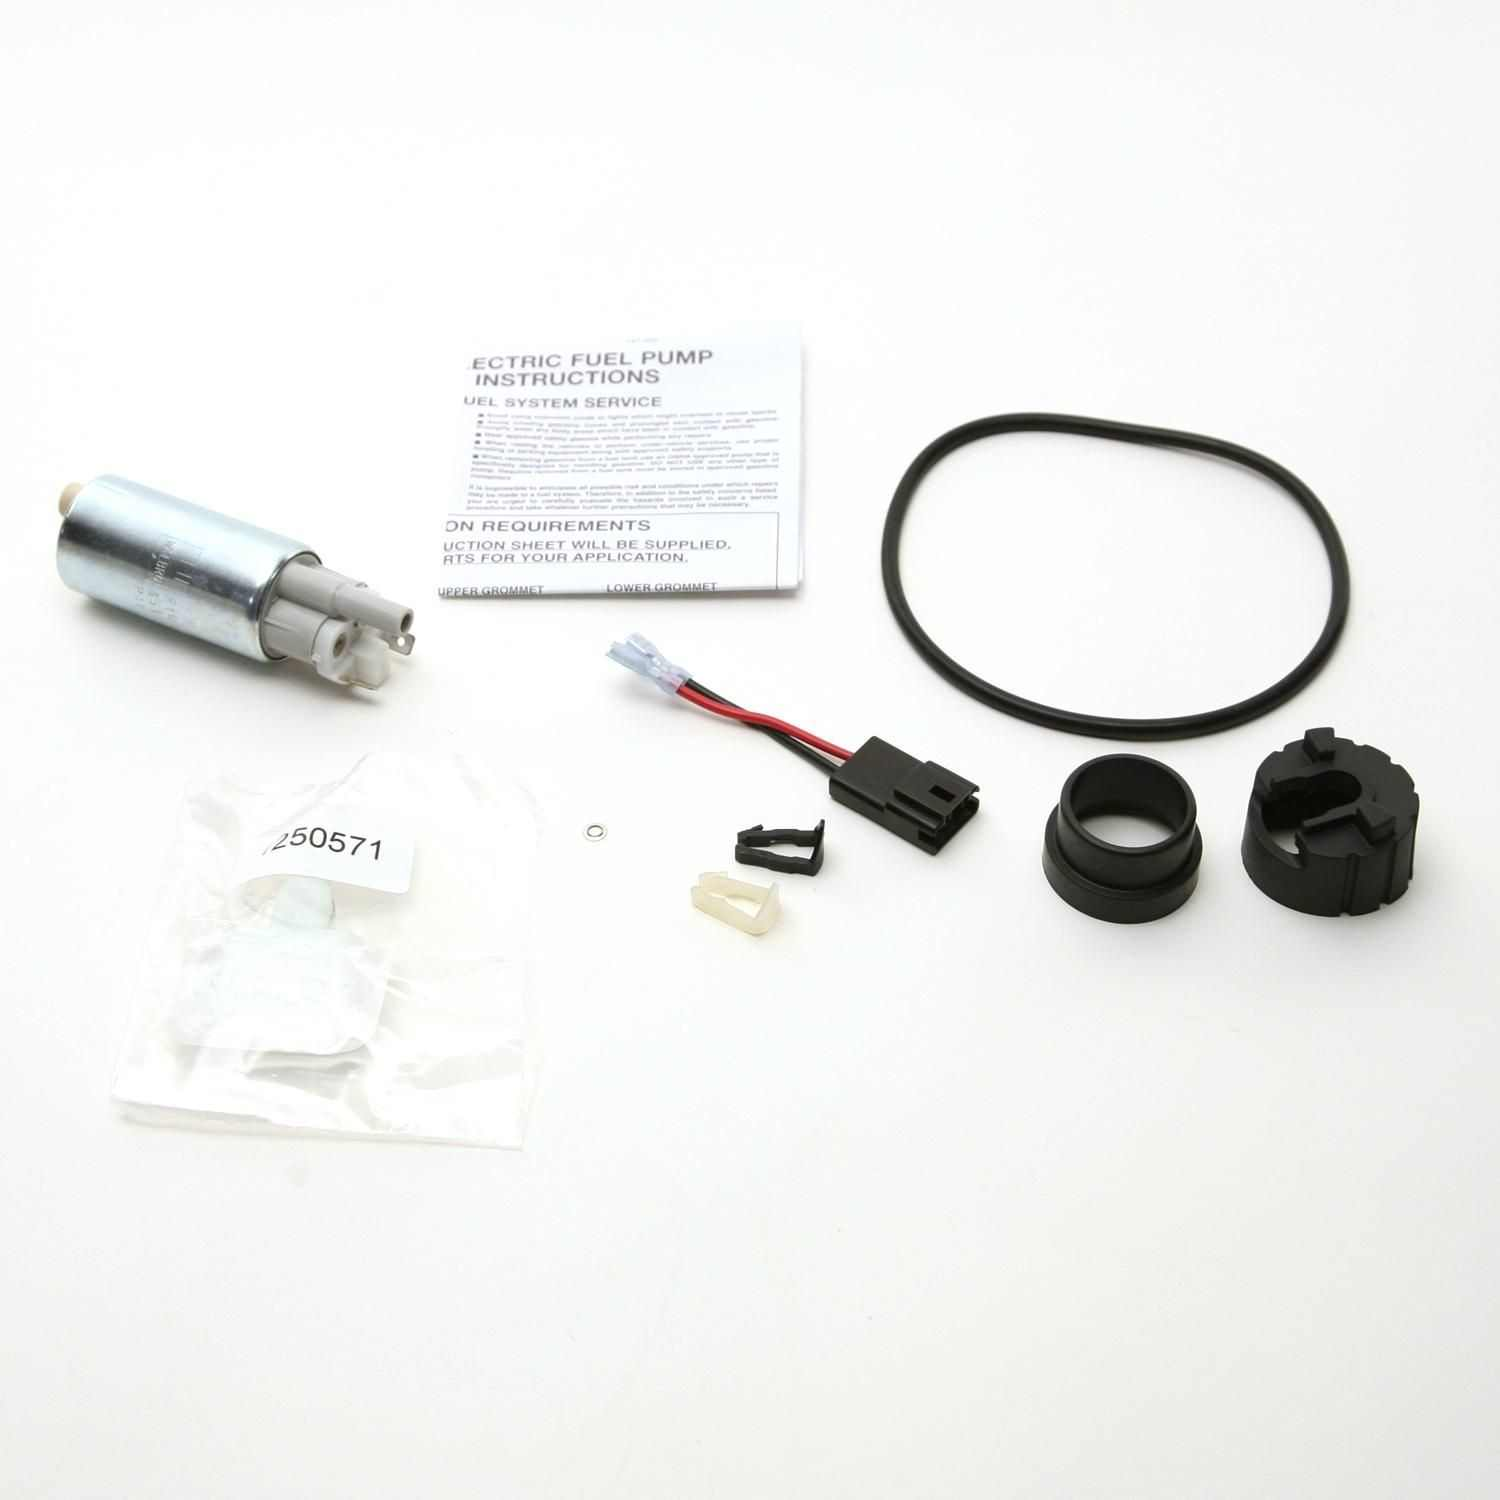 MAGNETI MARELLI OFFERED BY MOPAR - Fuel Pump and Strainer Set - MGM 1AMFP00036